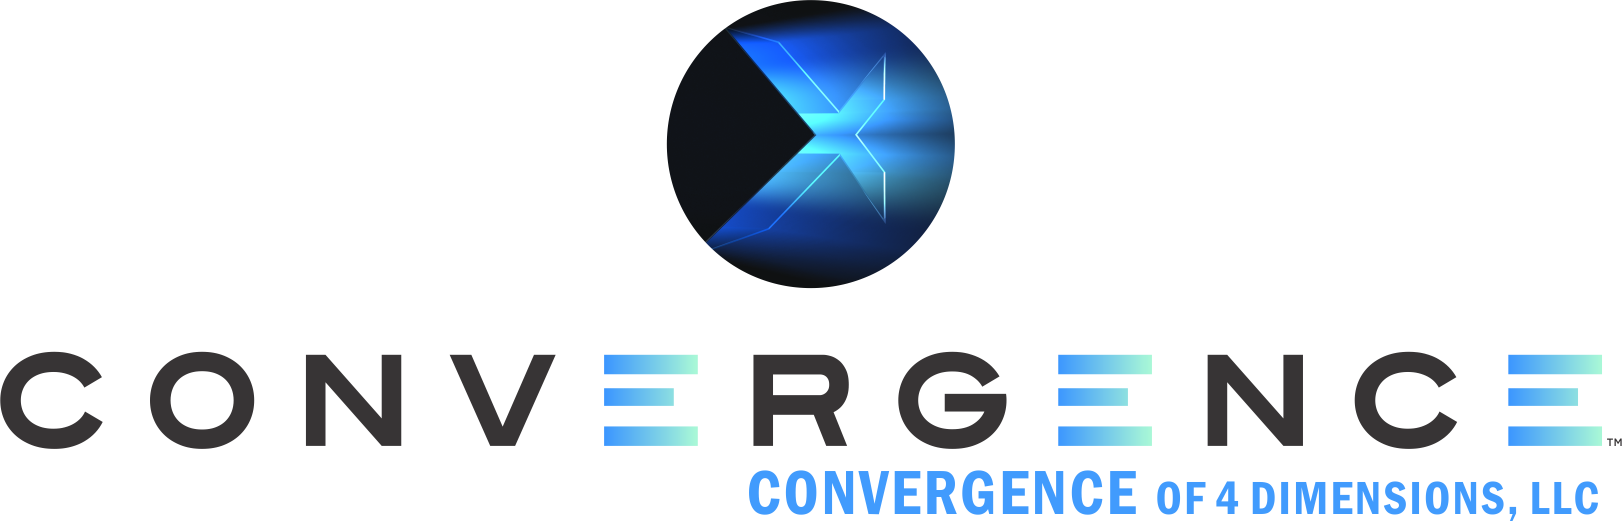 Convergence icon stack tm.png